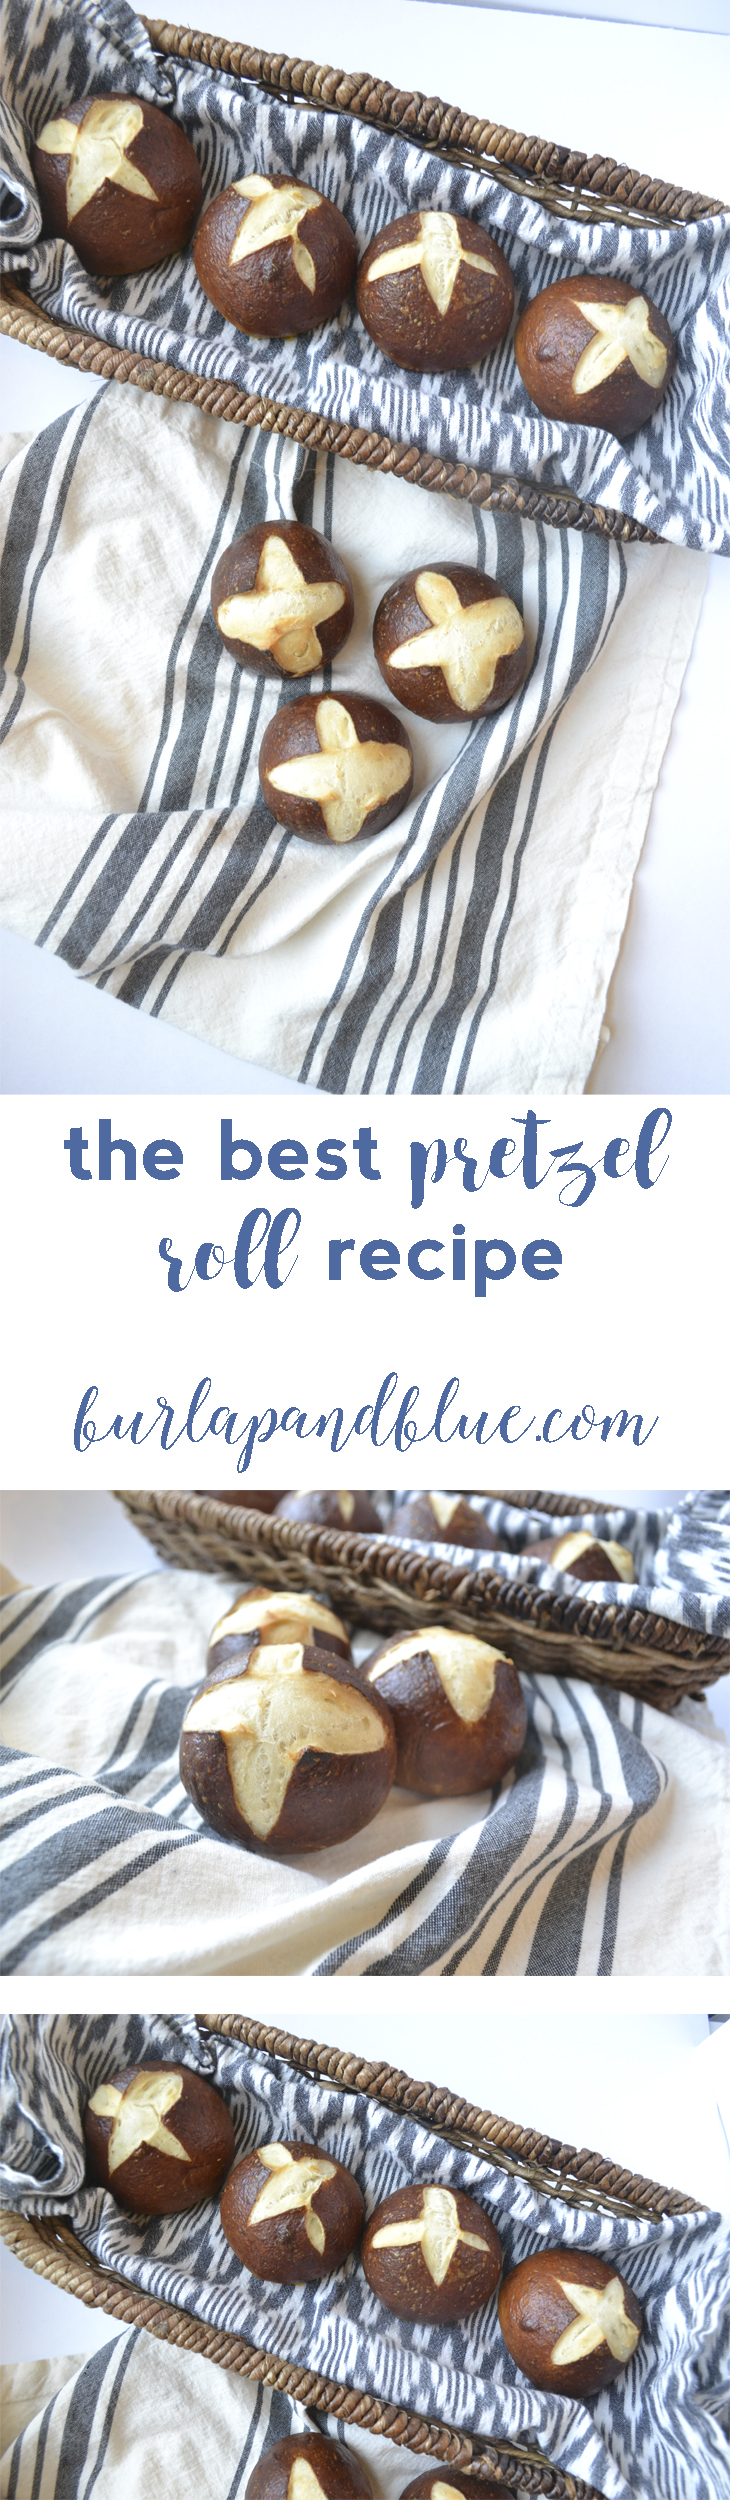 the very best pretzel roll recipe out there!